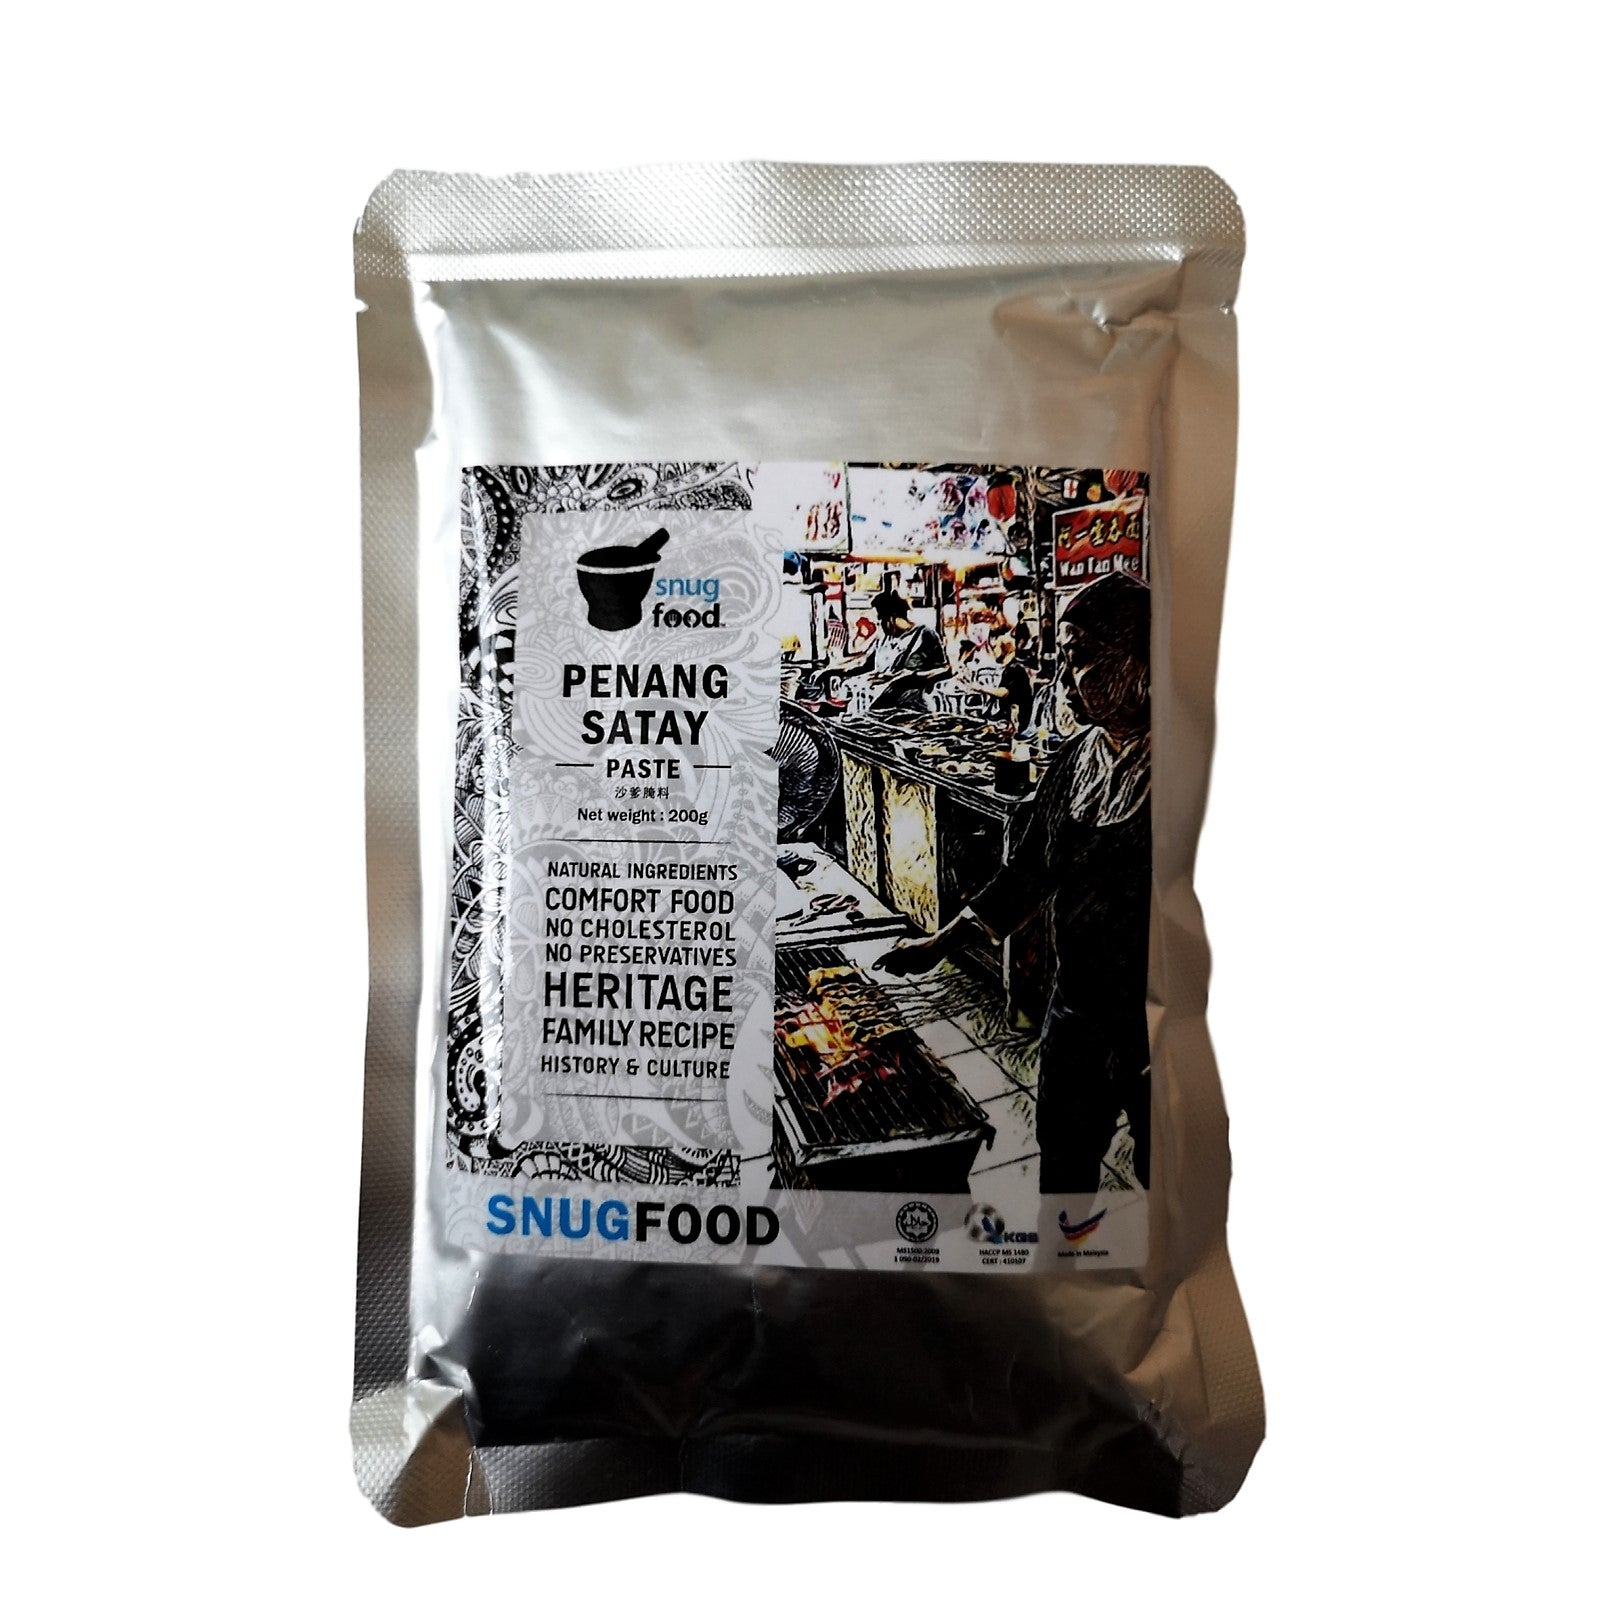 Snugfood Penang Satay Paste 200g